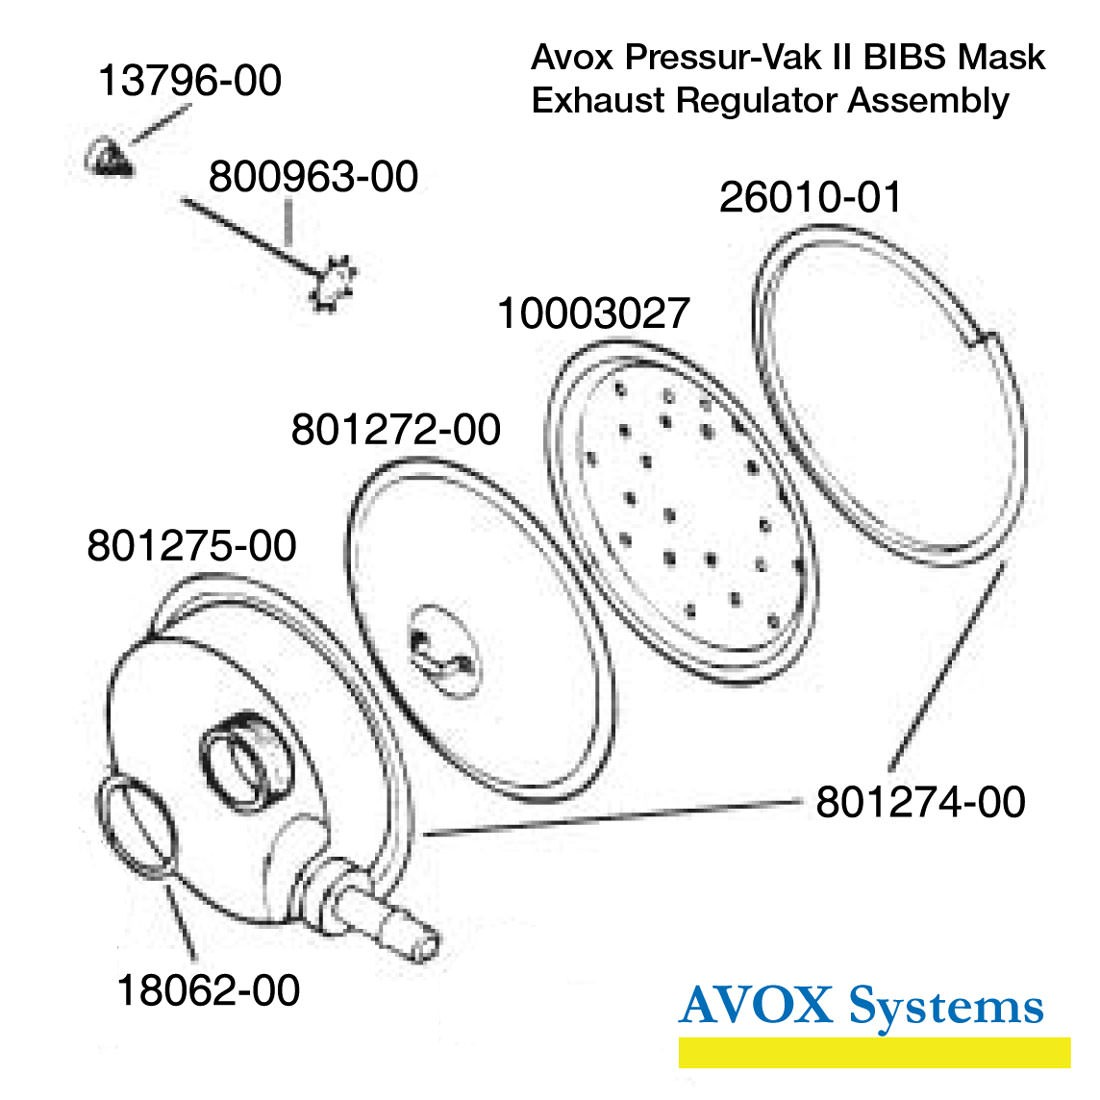 Avox Pressur-Vak II BIBS Mask - Exhaust Regulator Assembly